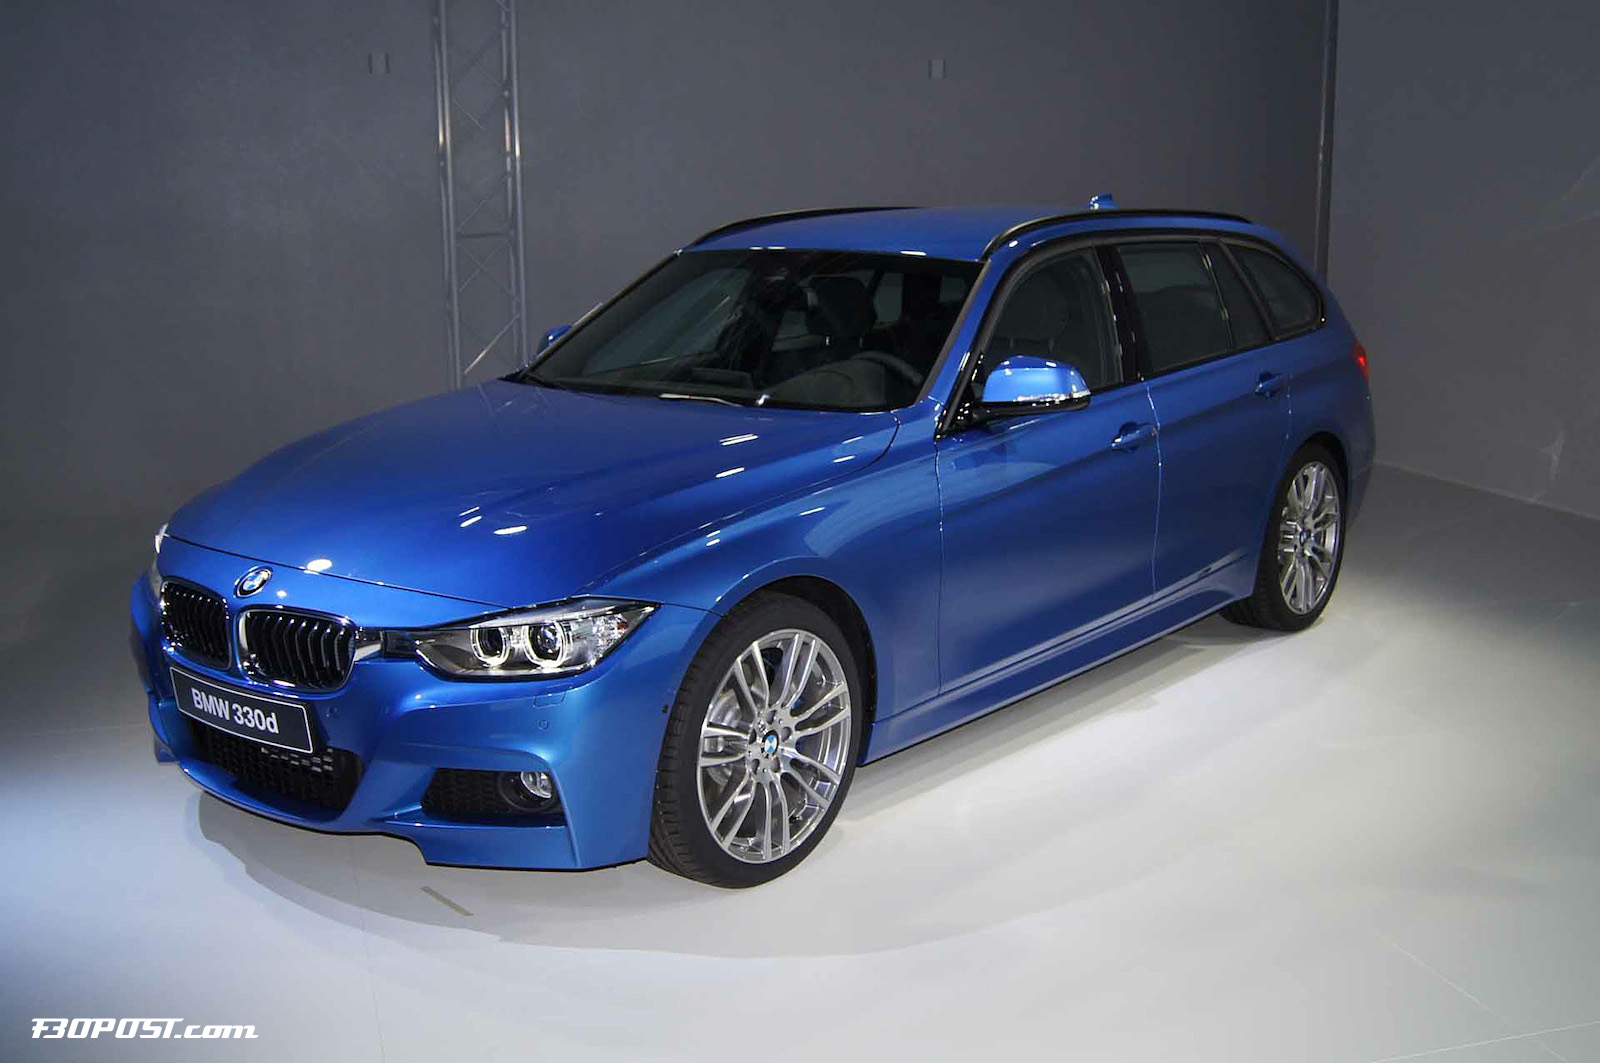 2019 BMW 3 Series Touring photo - 1